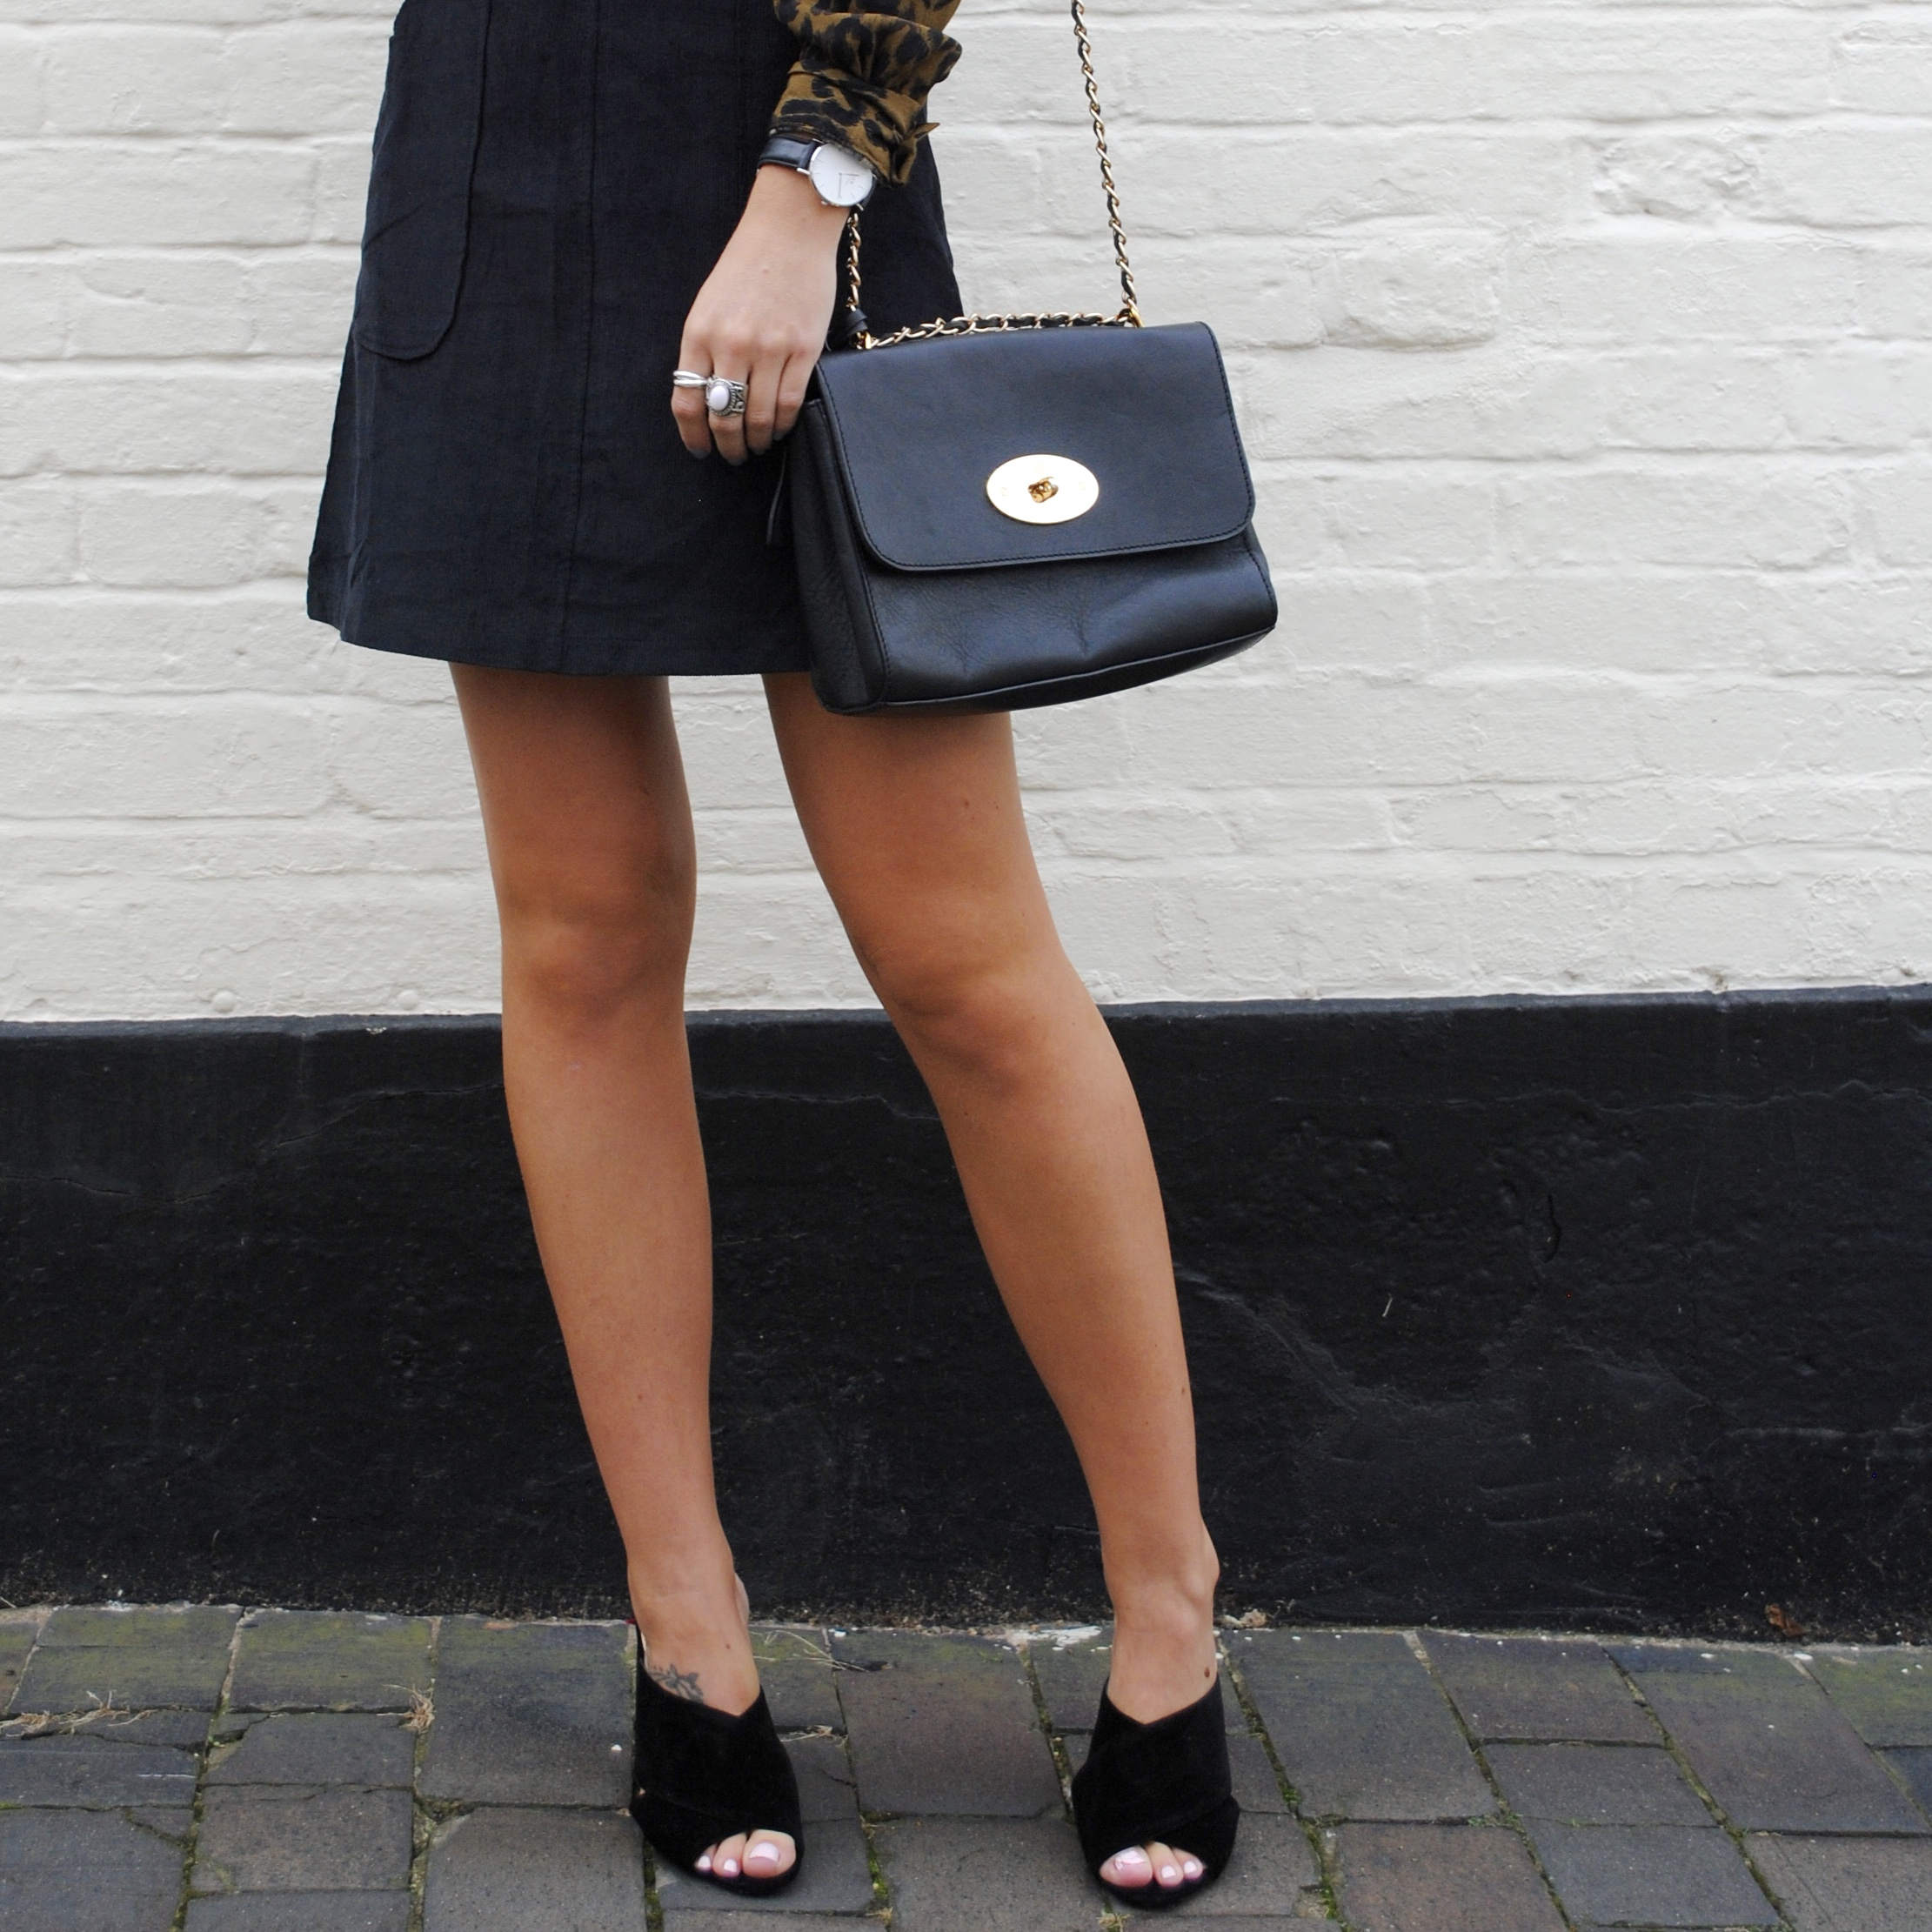 laura byrnes, lauras little locket, black pinafore dress, missy empire, outfit of the day, how to wear a black pinafore dress, black males, mulberry lily bag, blonde wavy hair, animal print shirt